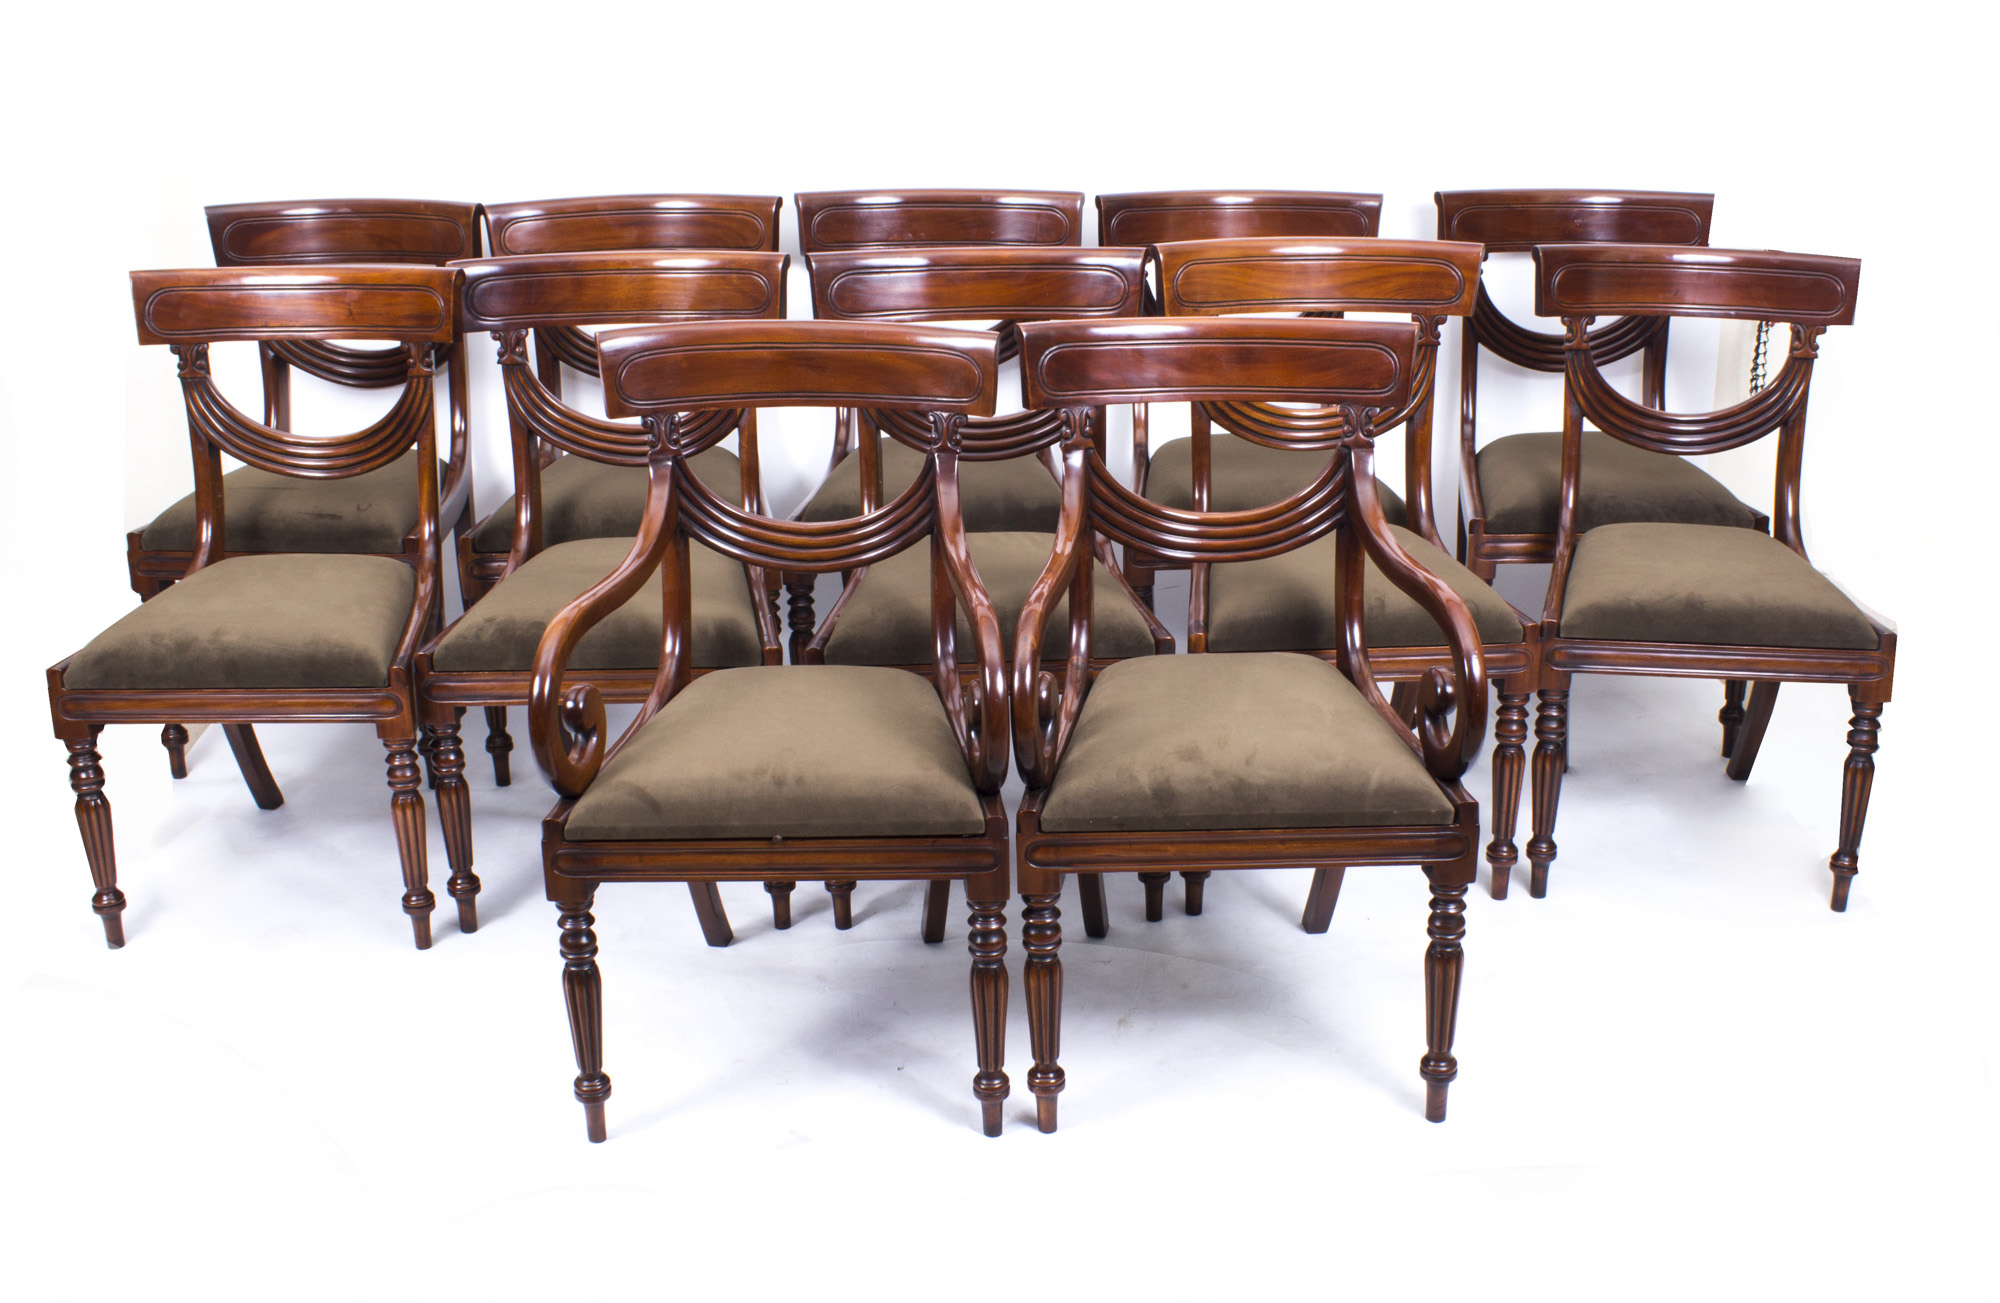 Regency Style Chairs ~ Set regency style mahogany dining chairs